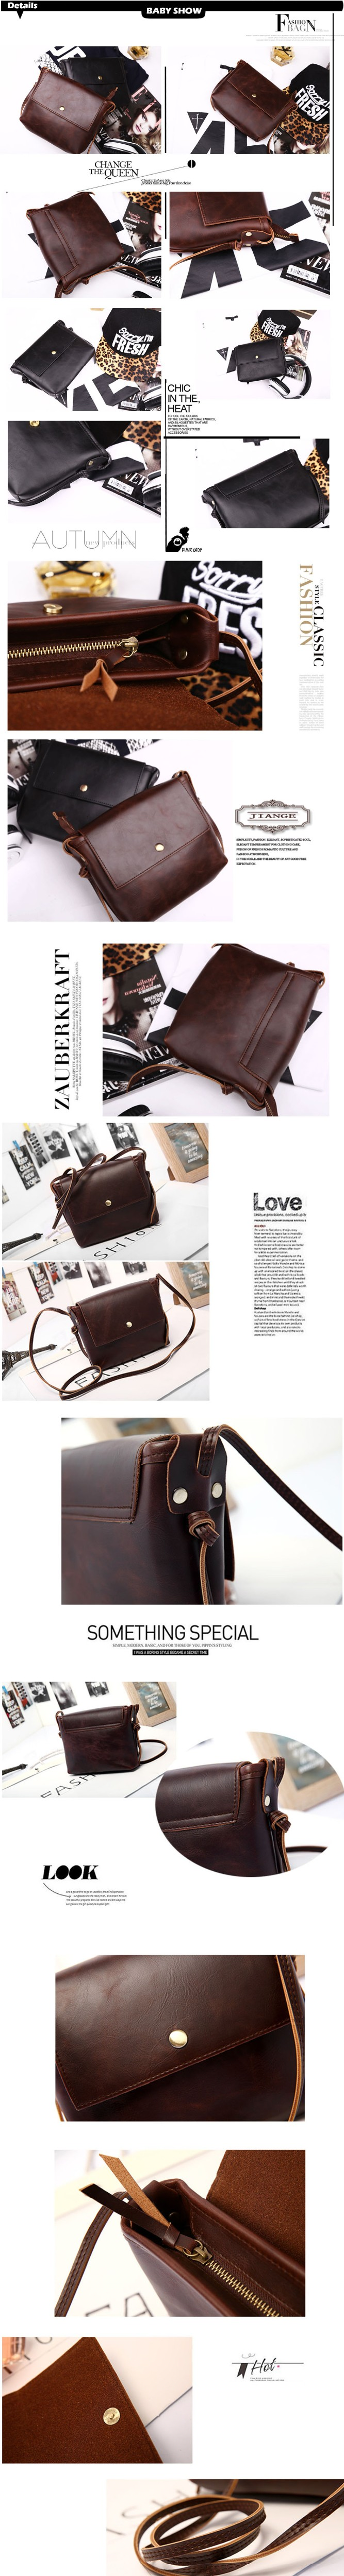 ETONWEAG Famous Brands PU Leather Women Messenger Bags Vintage Brown Flap Crossbody Bag Preppy Style Small Ladies Hand Bags